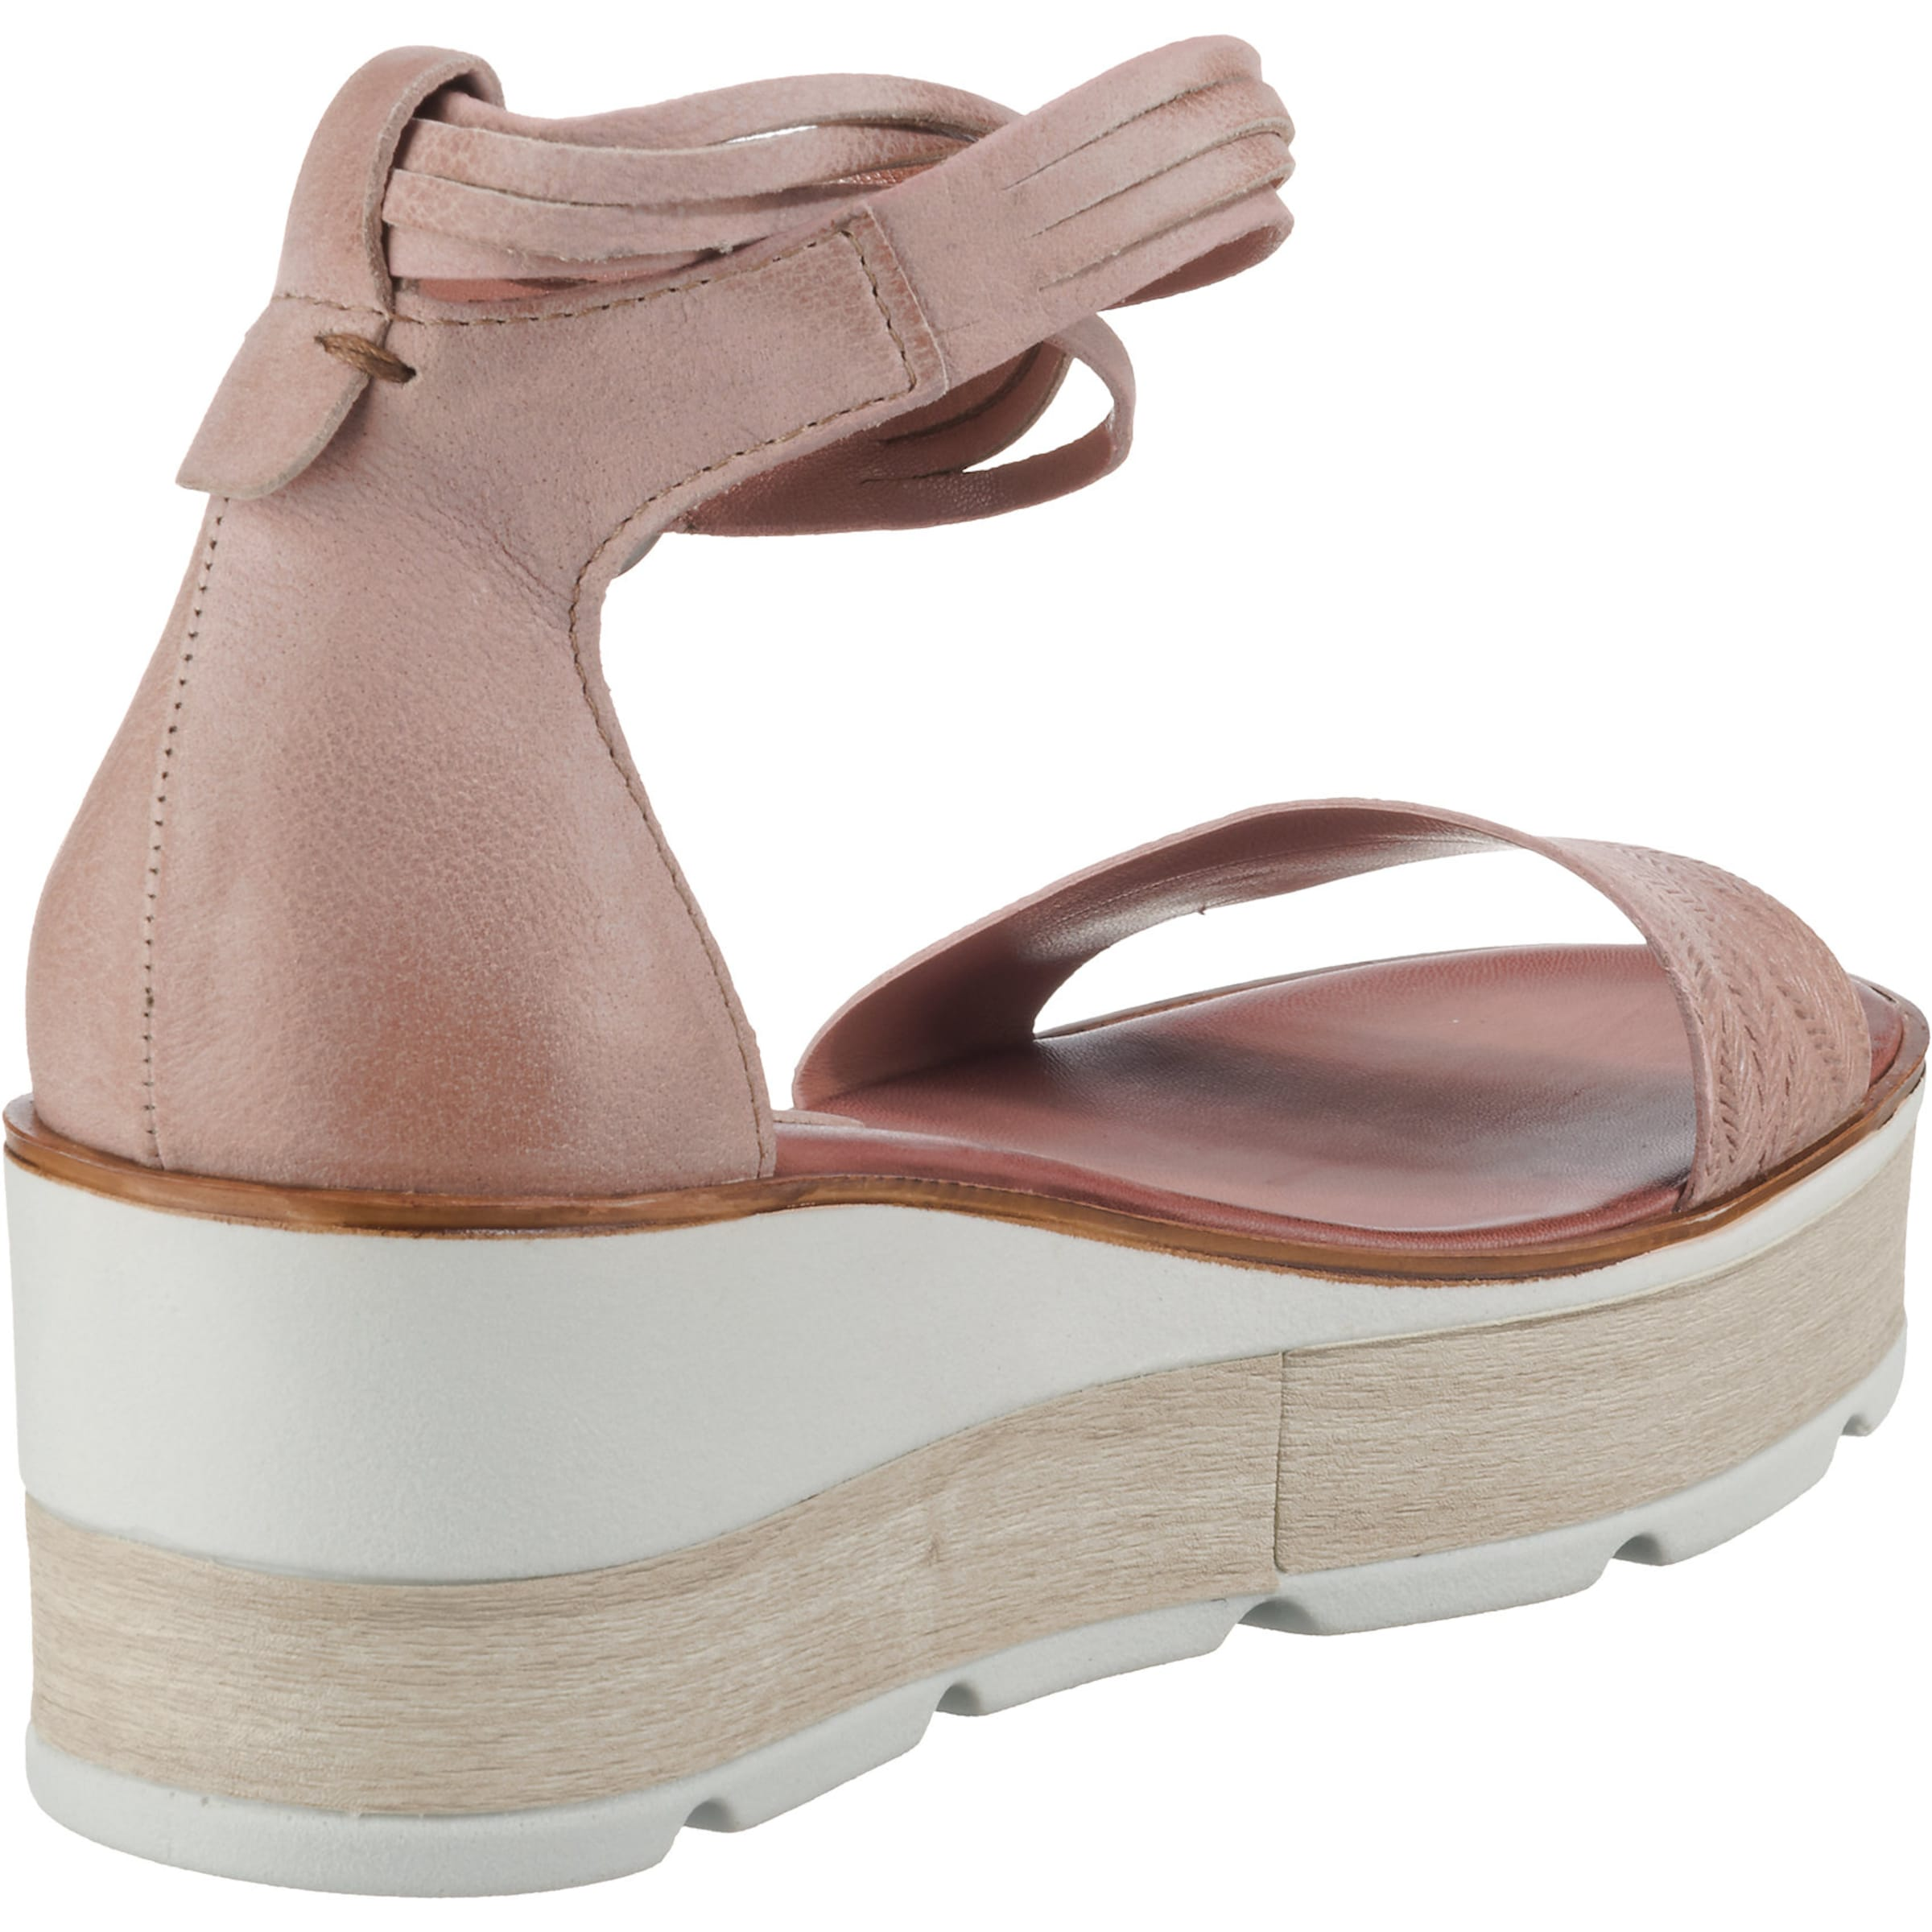 Sandalette Pink Fenena Jolanaamp; In vm0wn8NO